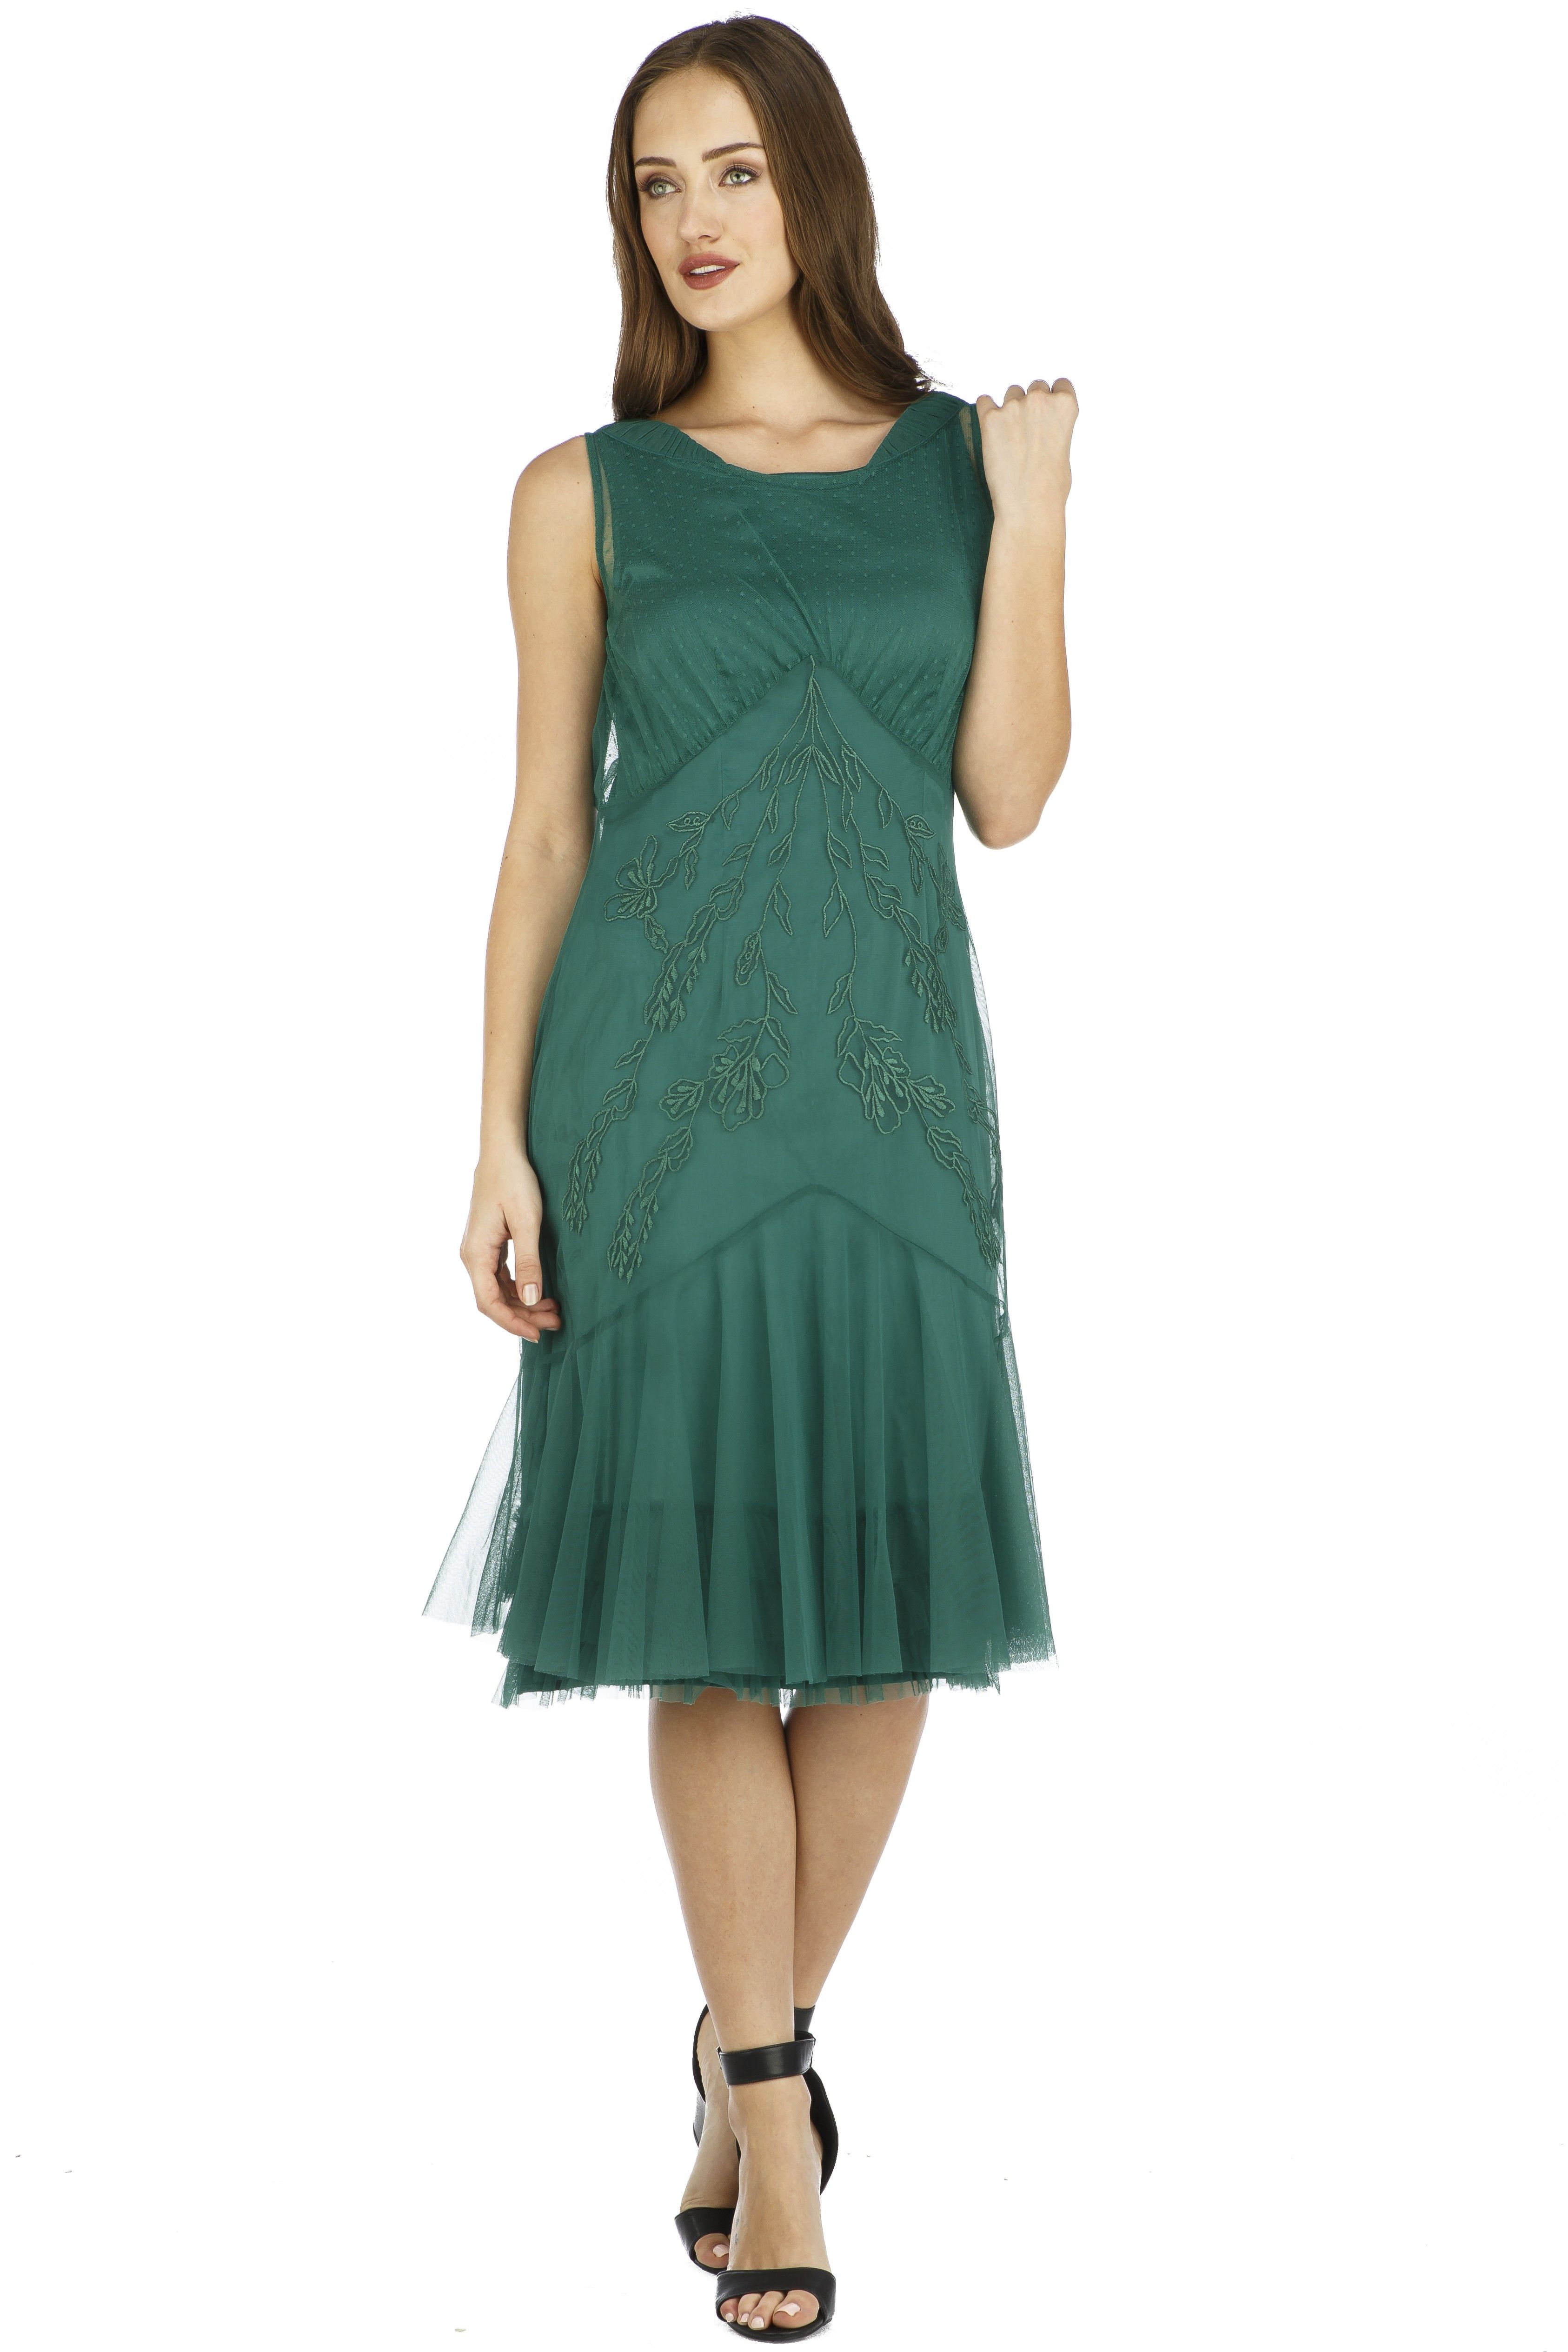 Tatianna Vintage Style Party Dress in Green by Nataya | Groom dress ...